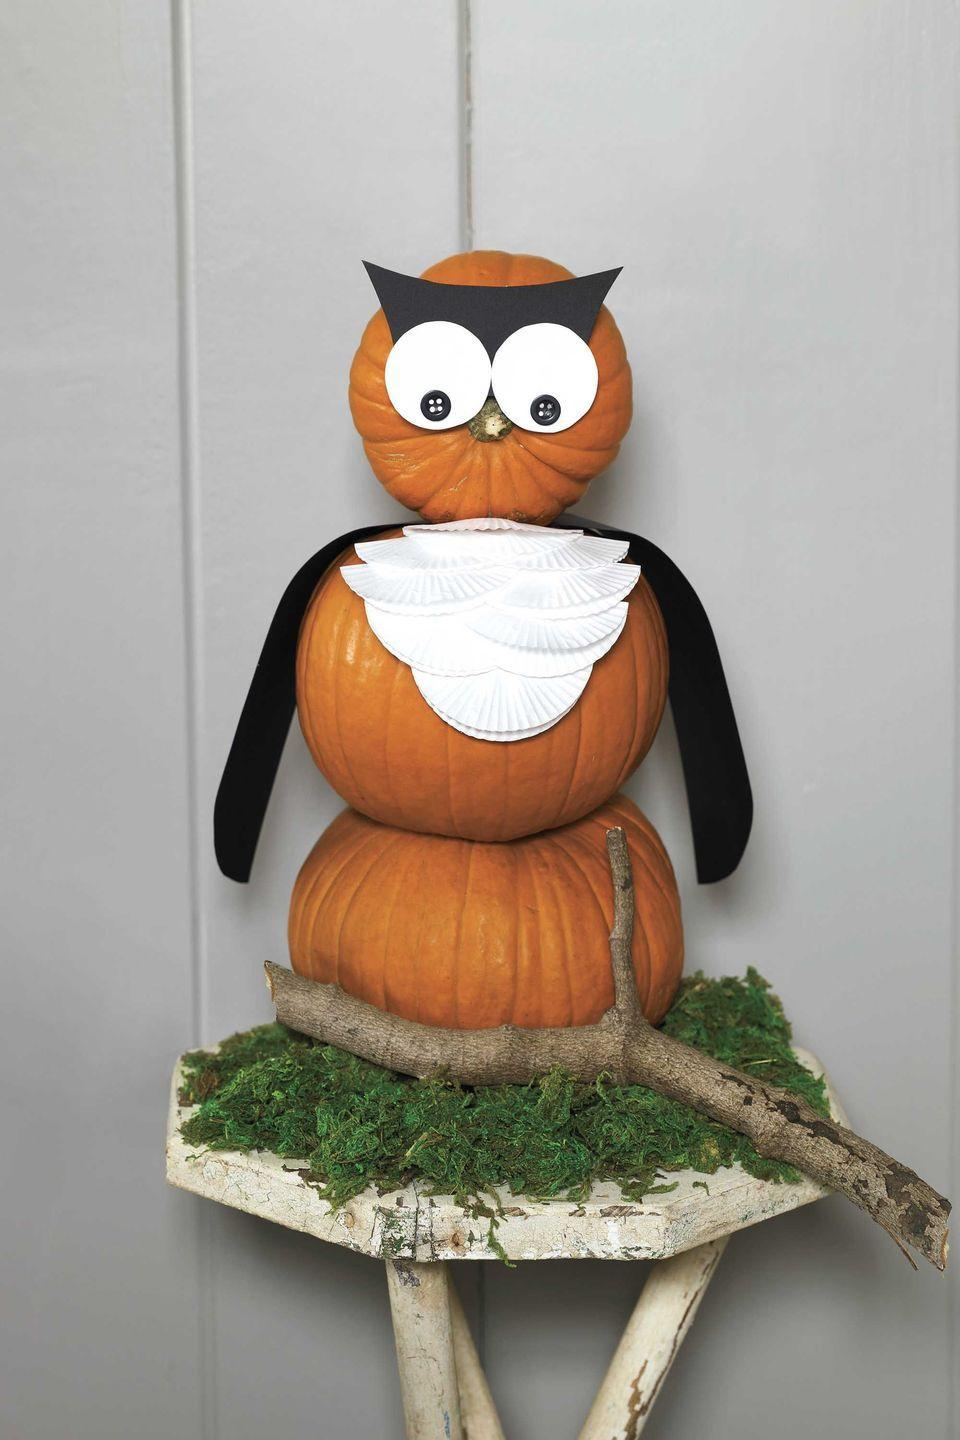 """<p>Whoo's cuter than this guy? Fashion an adorable owl out of a stack of pumpkins, paper and other basic craft supplies.</p><p><strong><em><a href=""""https://www.womansday.com/home/crafts-projects/how-to/a6013/craft-project-night-owl-123882/"""" rel=""""nofollow noopener"""" target=""""_blank"""" data-ylk=""""slk:Get the Night Owl tutorial."""" class=""""link rapid-noclick-resp"""">Get the Night Owl tutorial.</a></em></strong> </p>"""